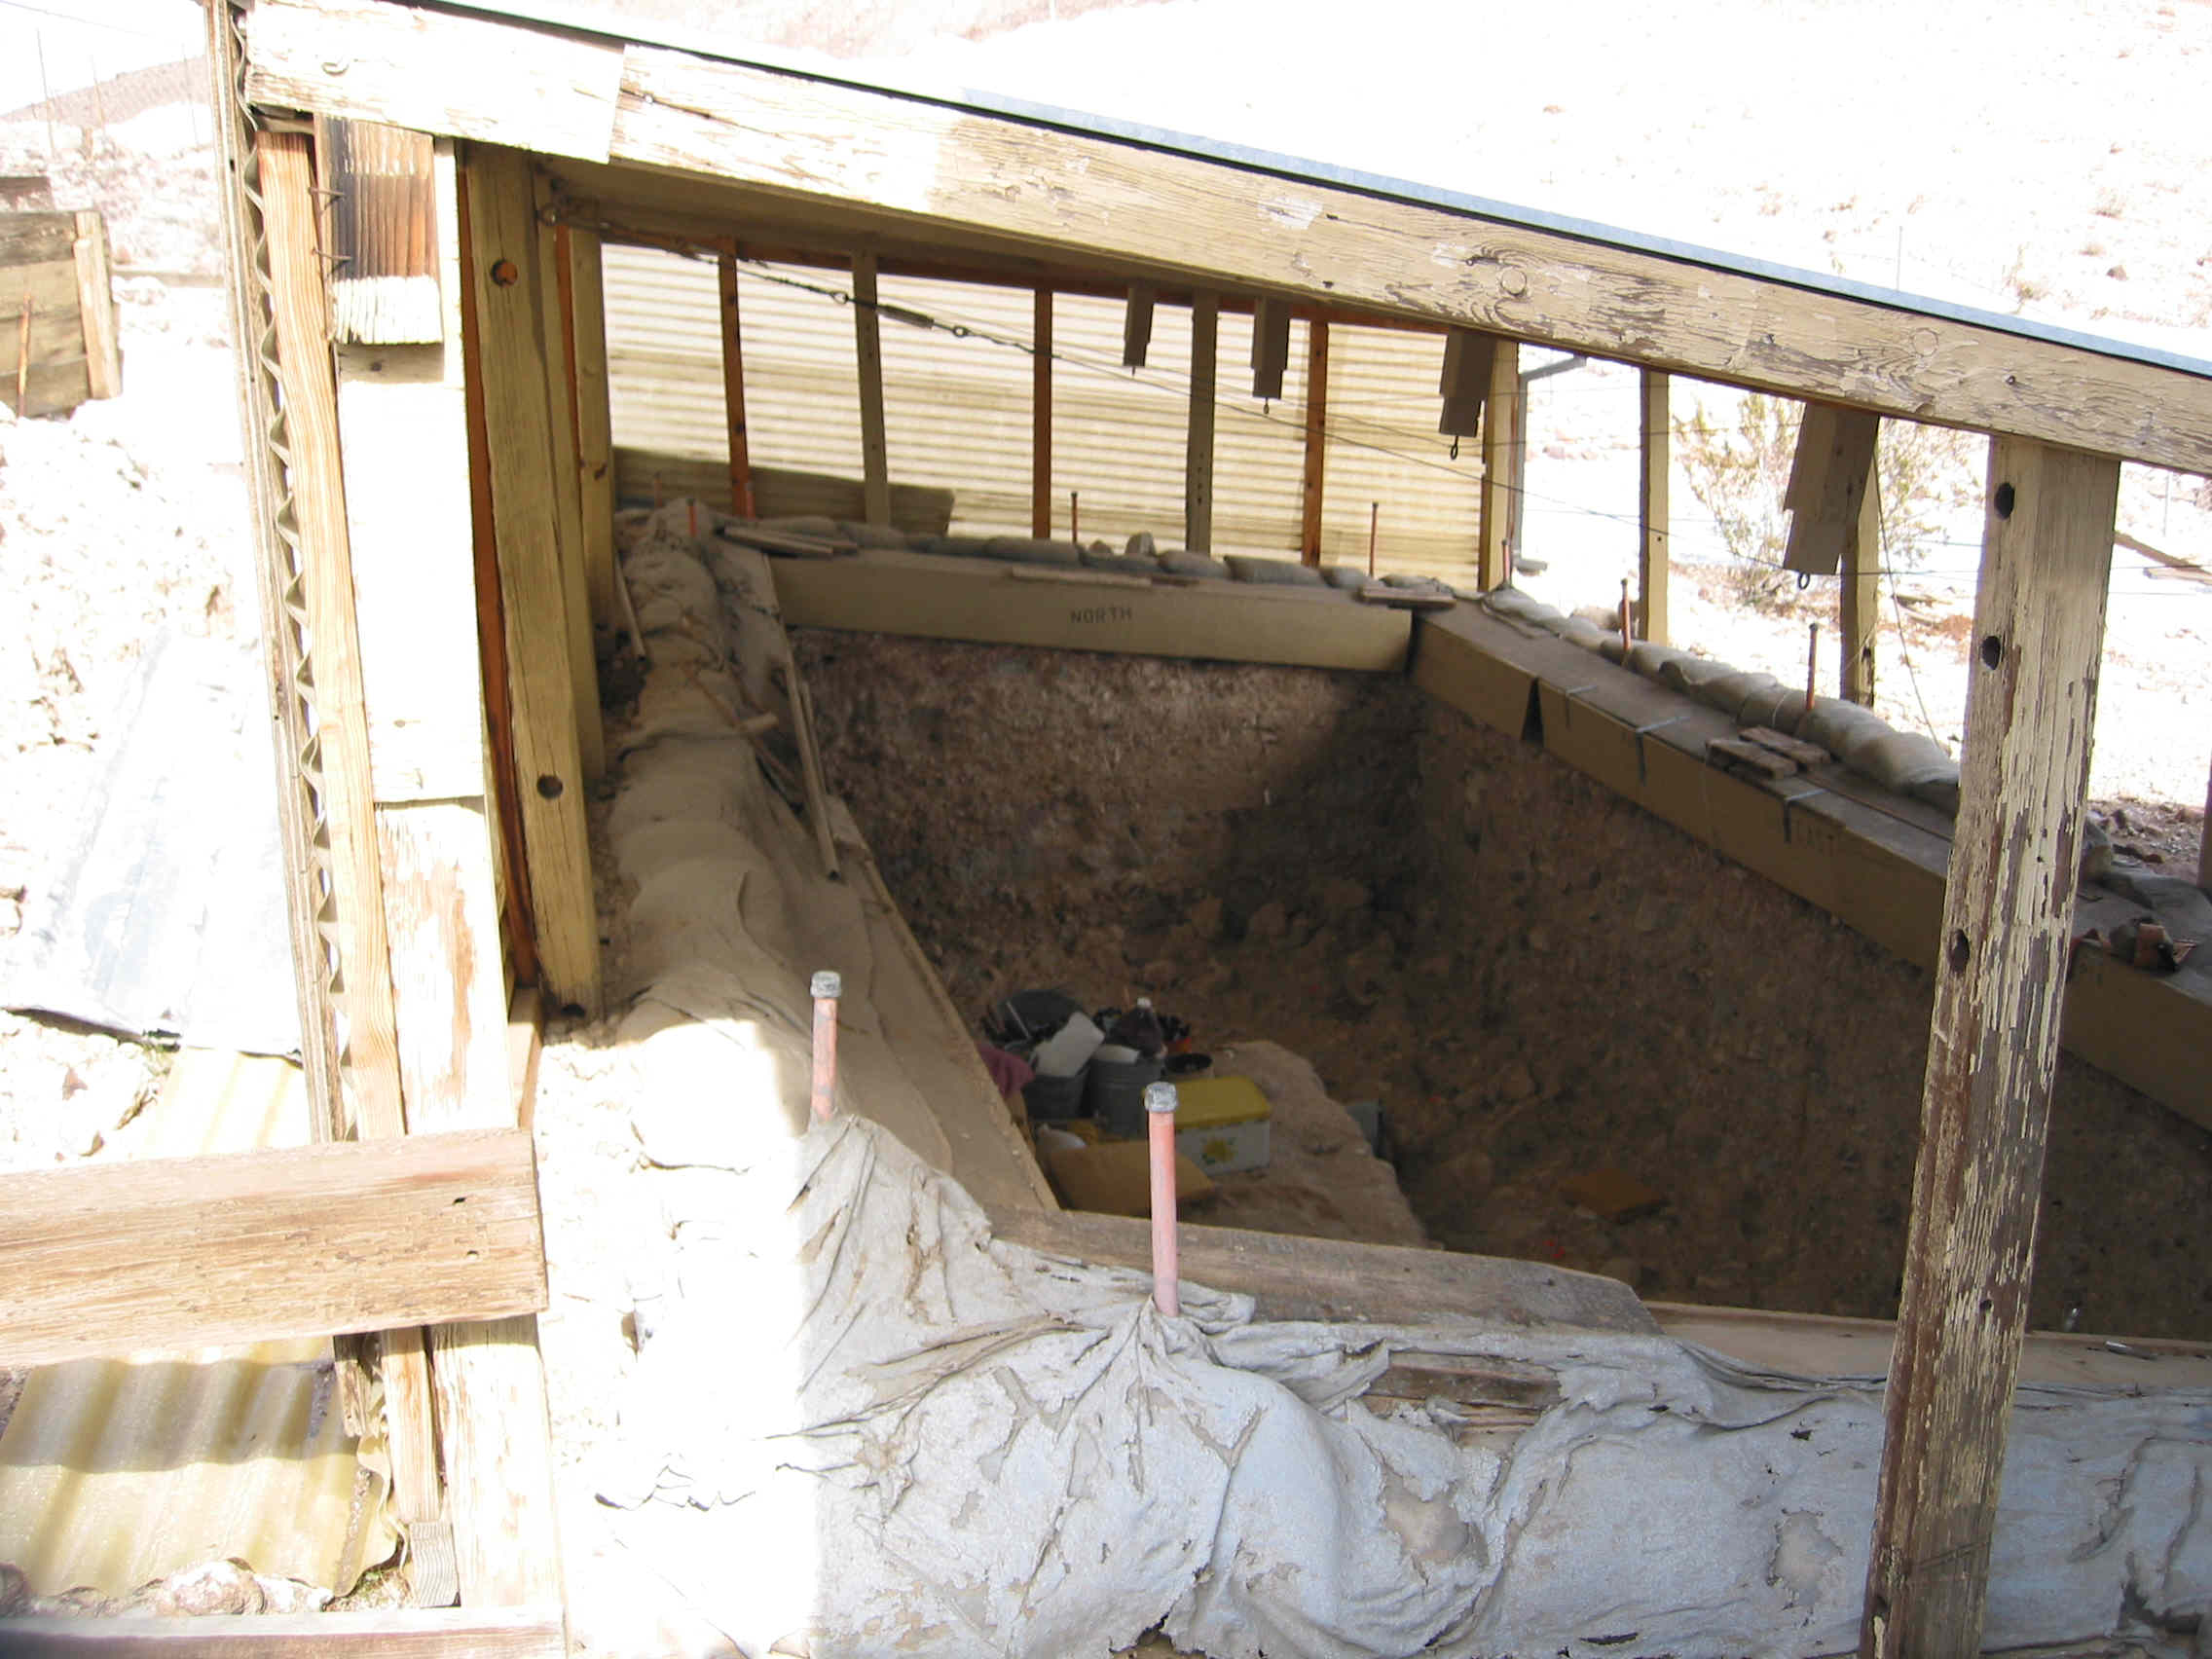 Early Man Site Yermo ca Calico Early Man Site is an